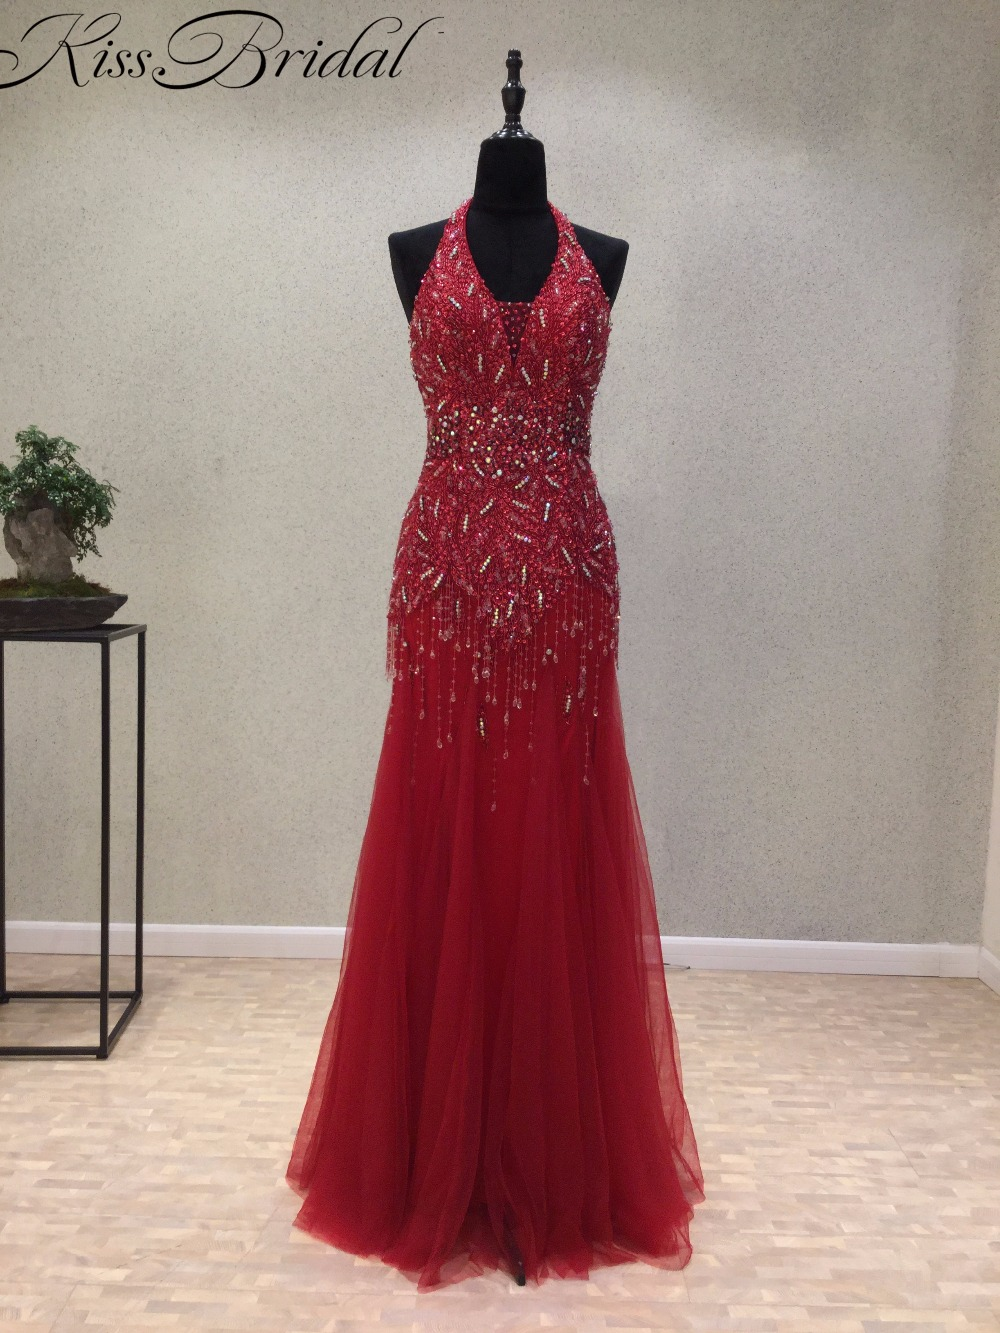 New Design Long   Evening     Dresses   2018 Halter Neck Sleeveless Floor Length Beading Tulle Mermaid Prom   Dresses   Vestido de festa